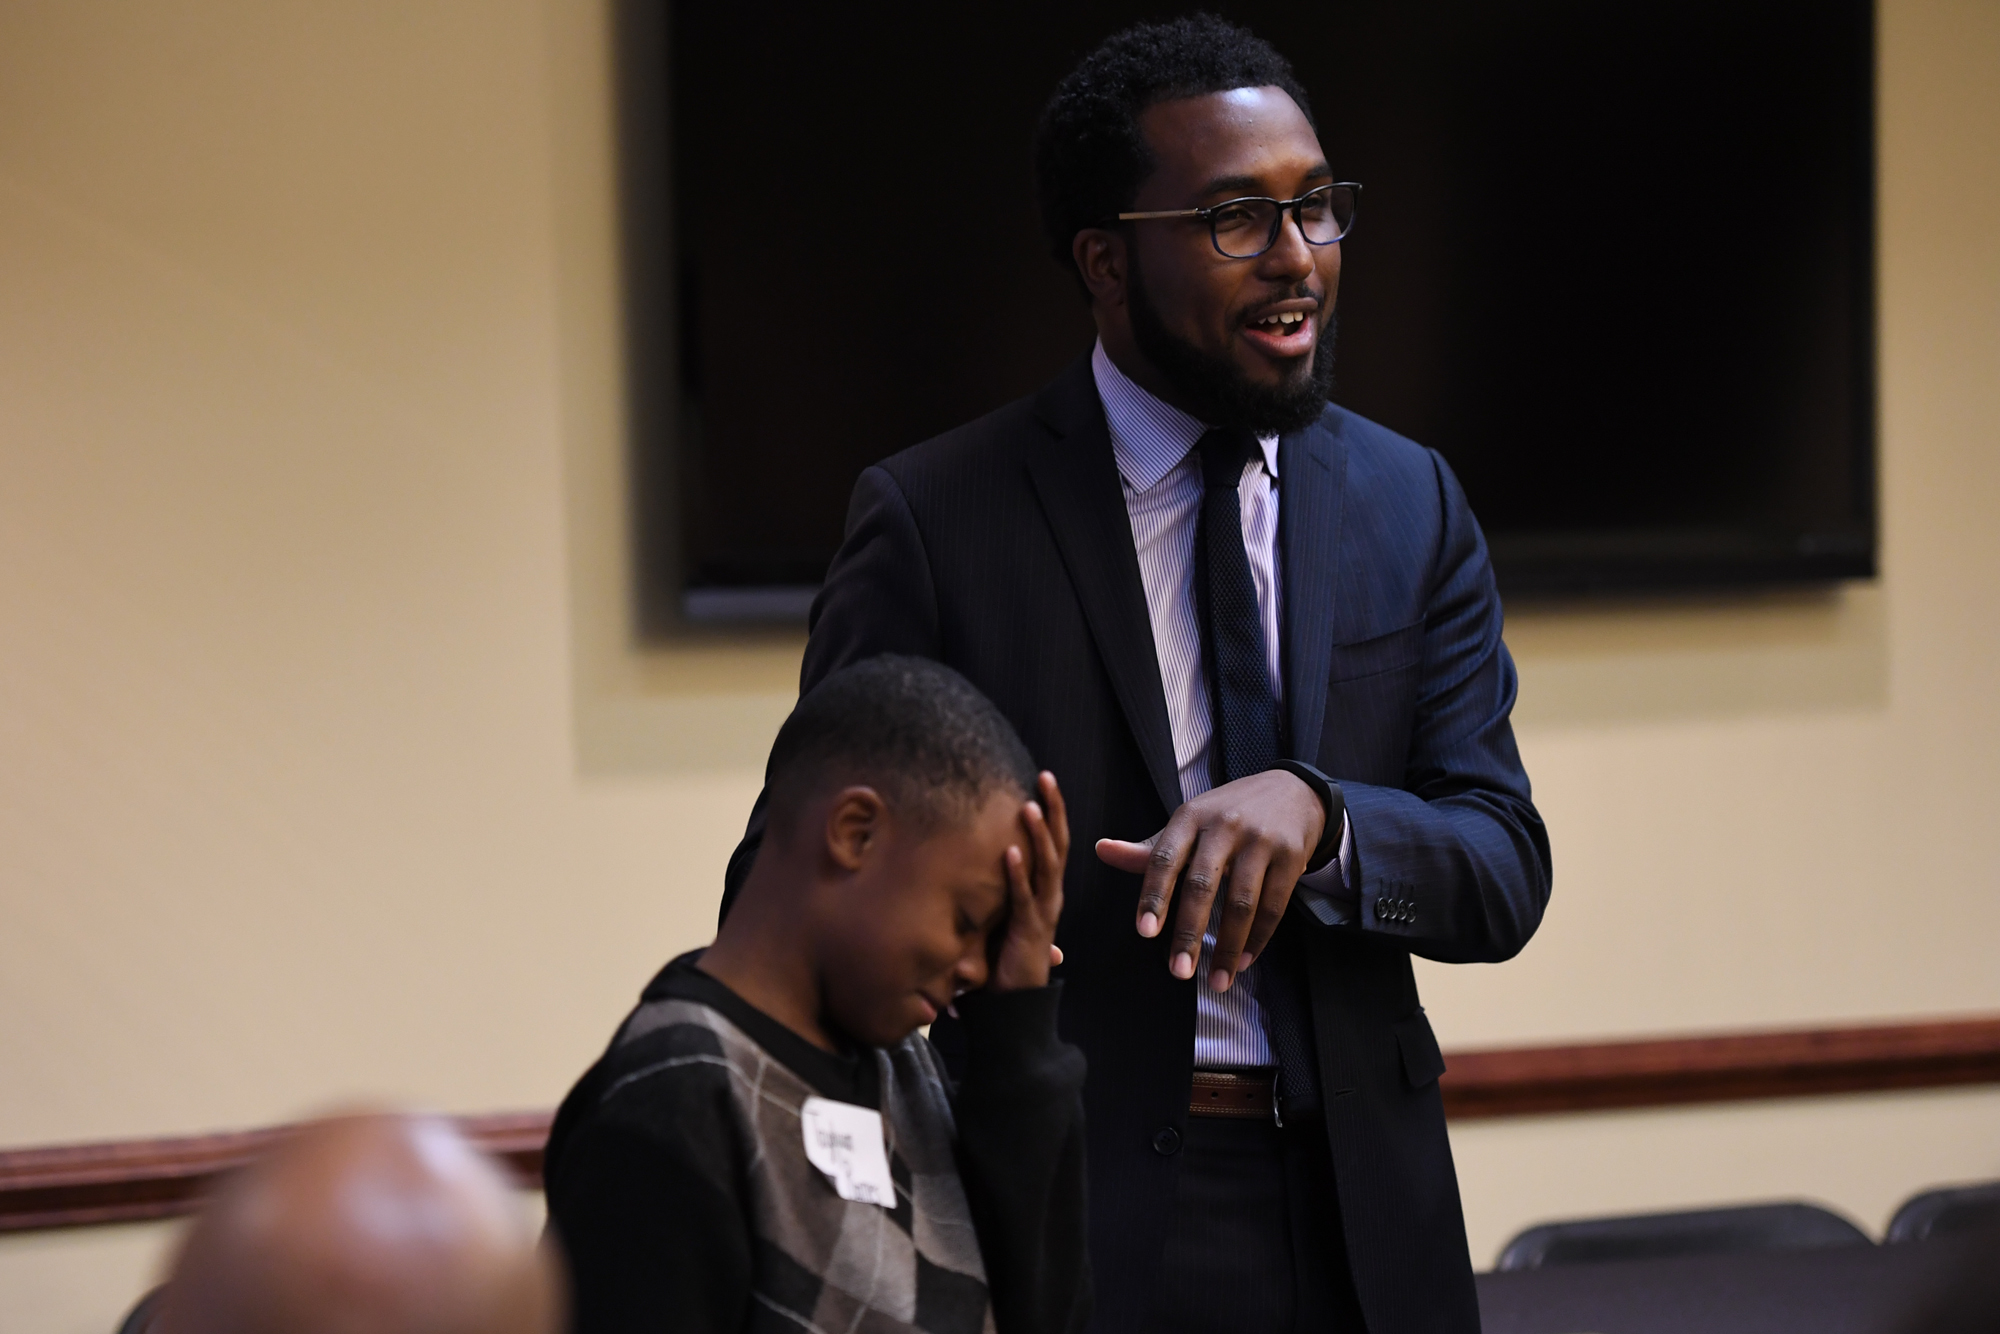 Niiobli Armah IV puts Tayquan Barnes on the spot about his knowledge of all the presidents during the Summit for My BrotherÕs Keeper at the United Way of Greater Greensboro on October 10, 2016 in Greensboro, North Carolina.